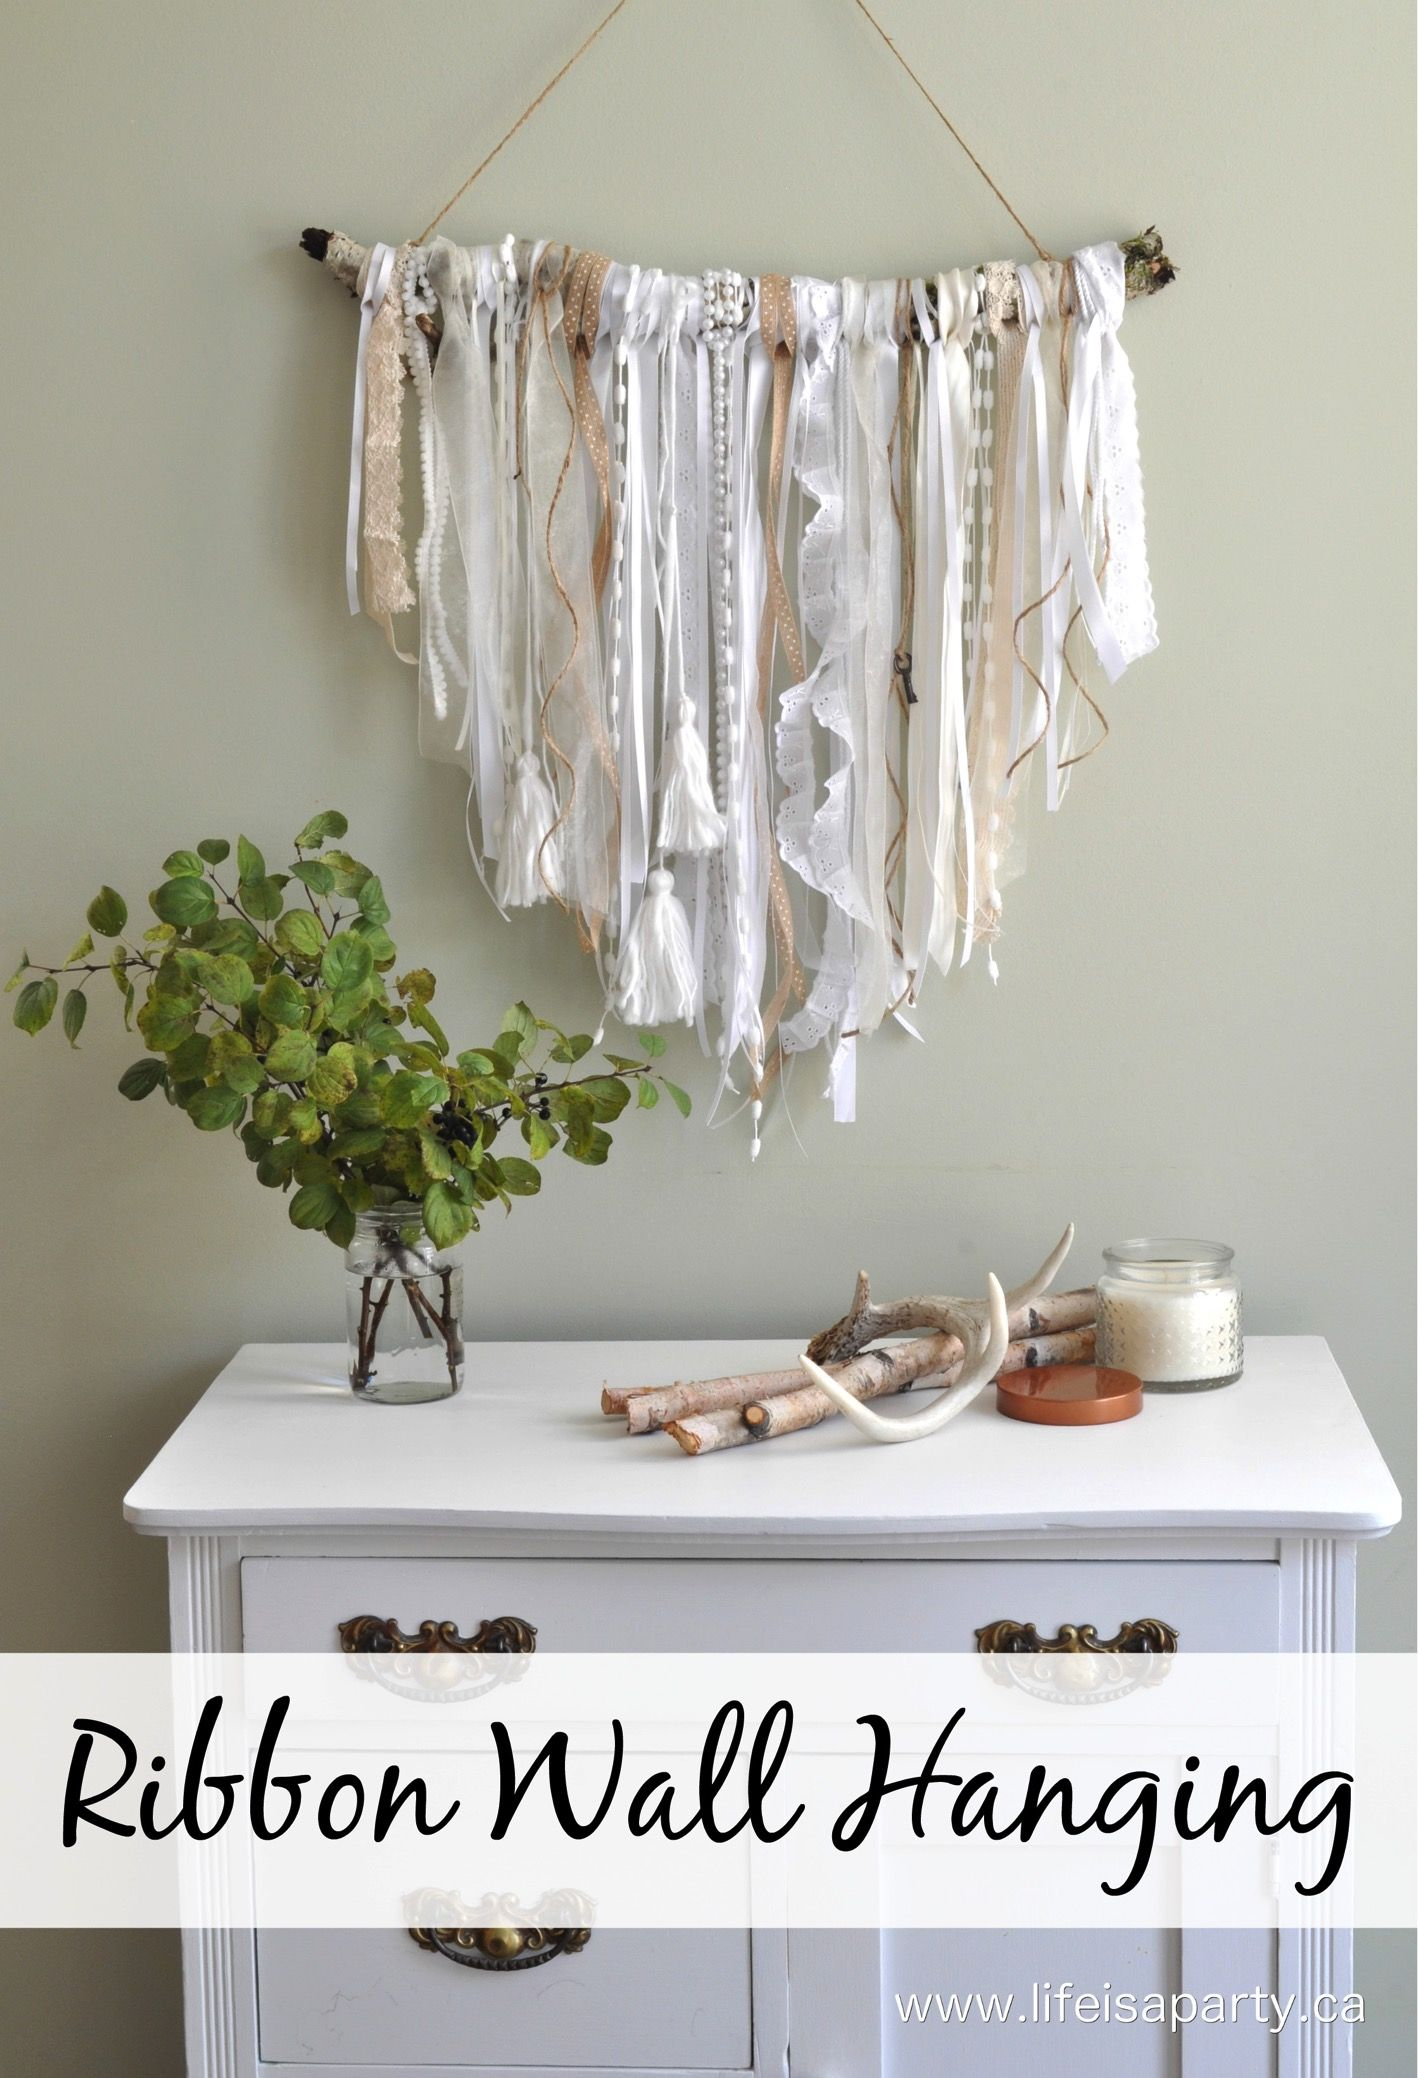 Ribbon Wall Hanging Easy DIY Project